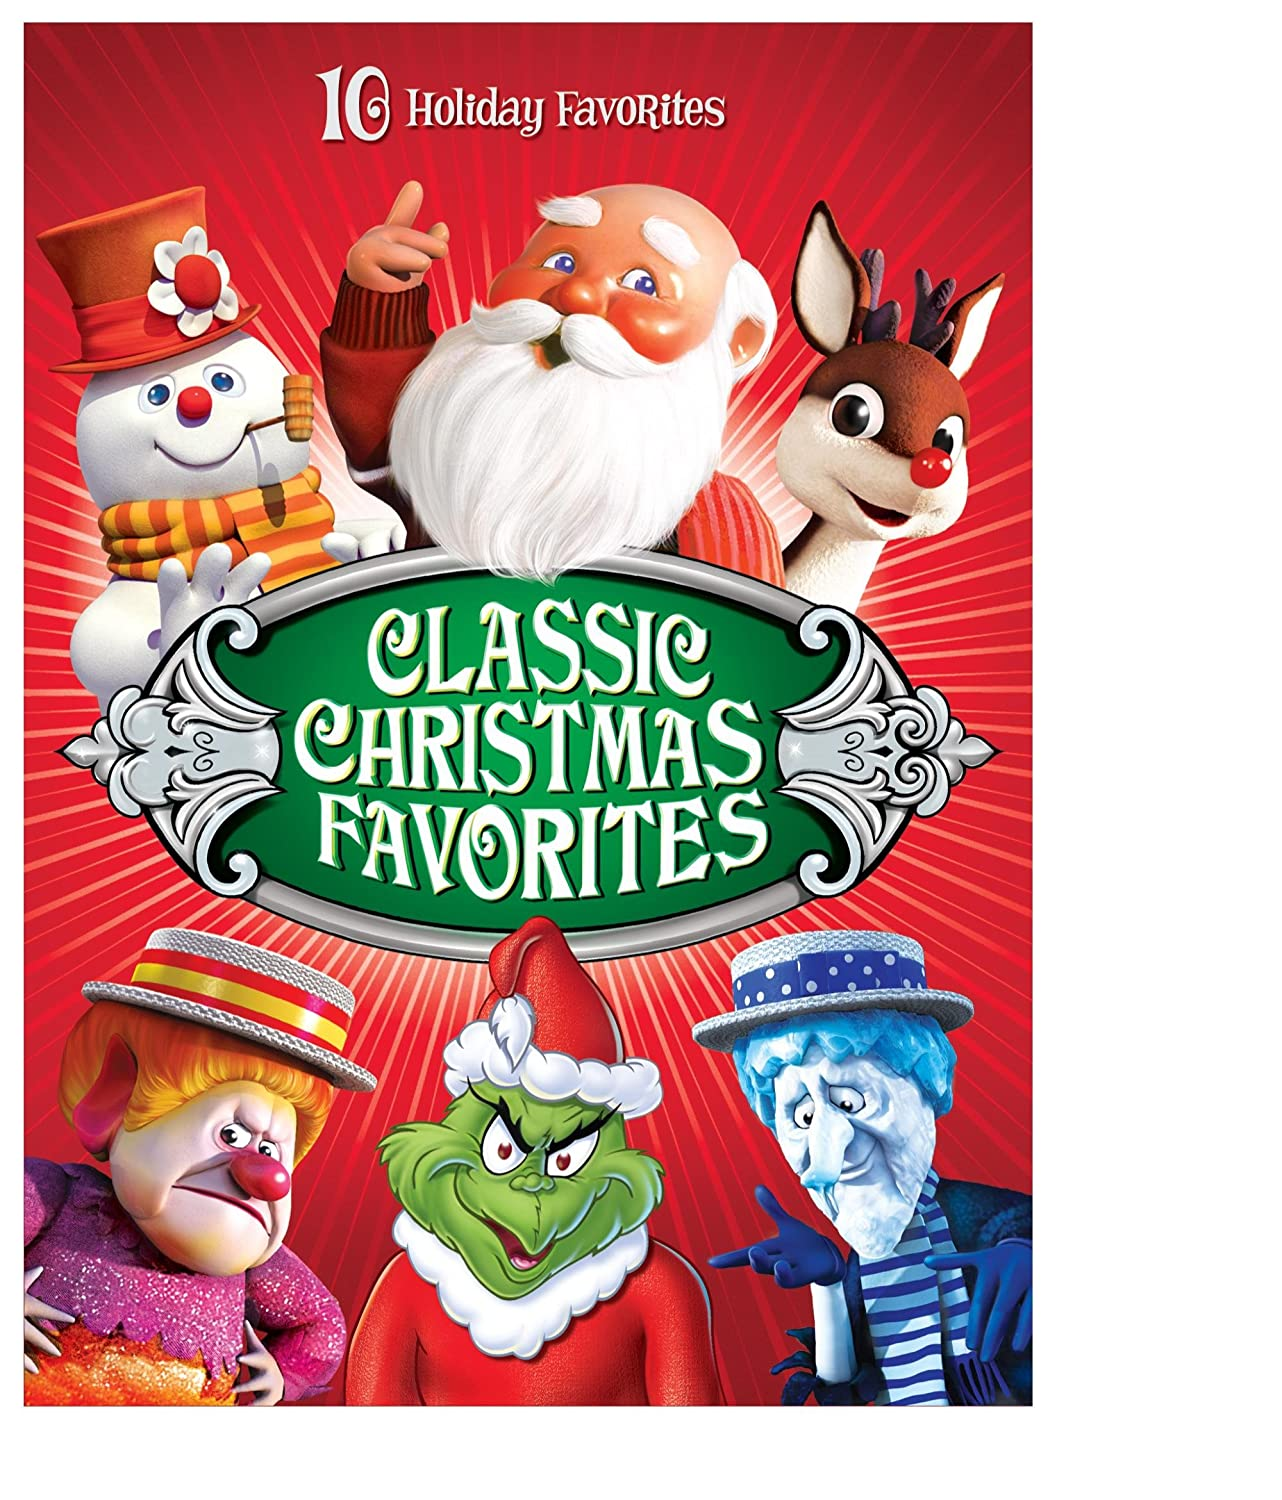 Classic Christmas Favorites by Amazon